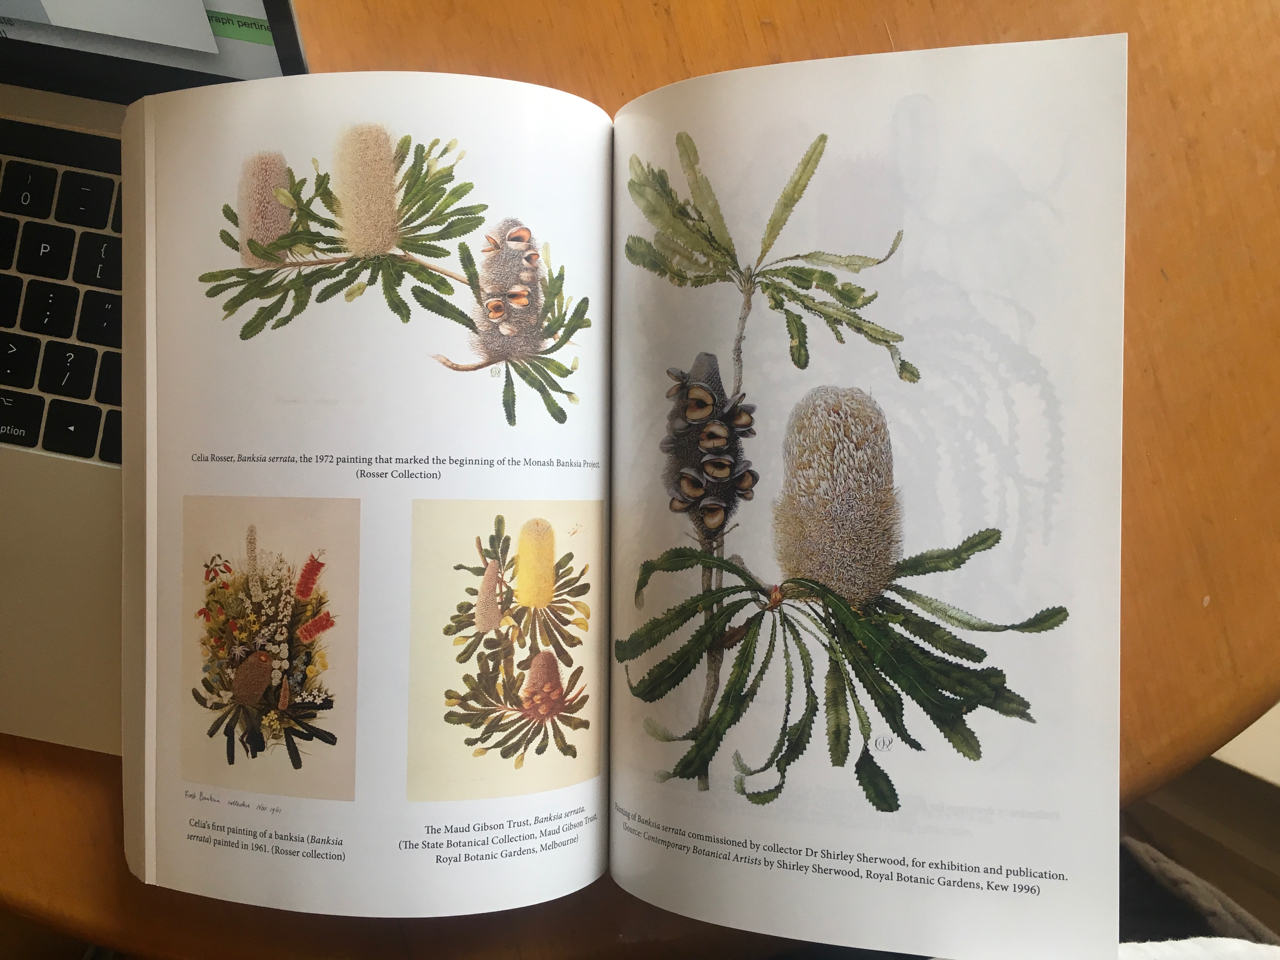 Some Banksia illustrations by Celia Rosser